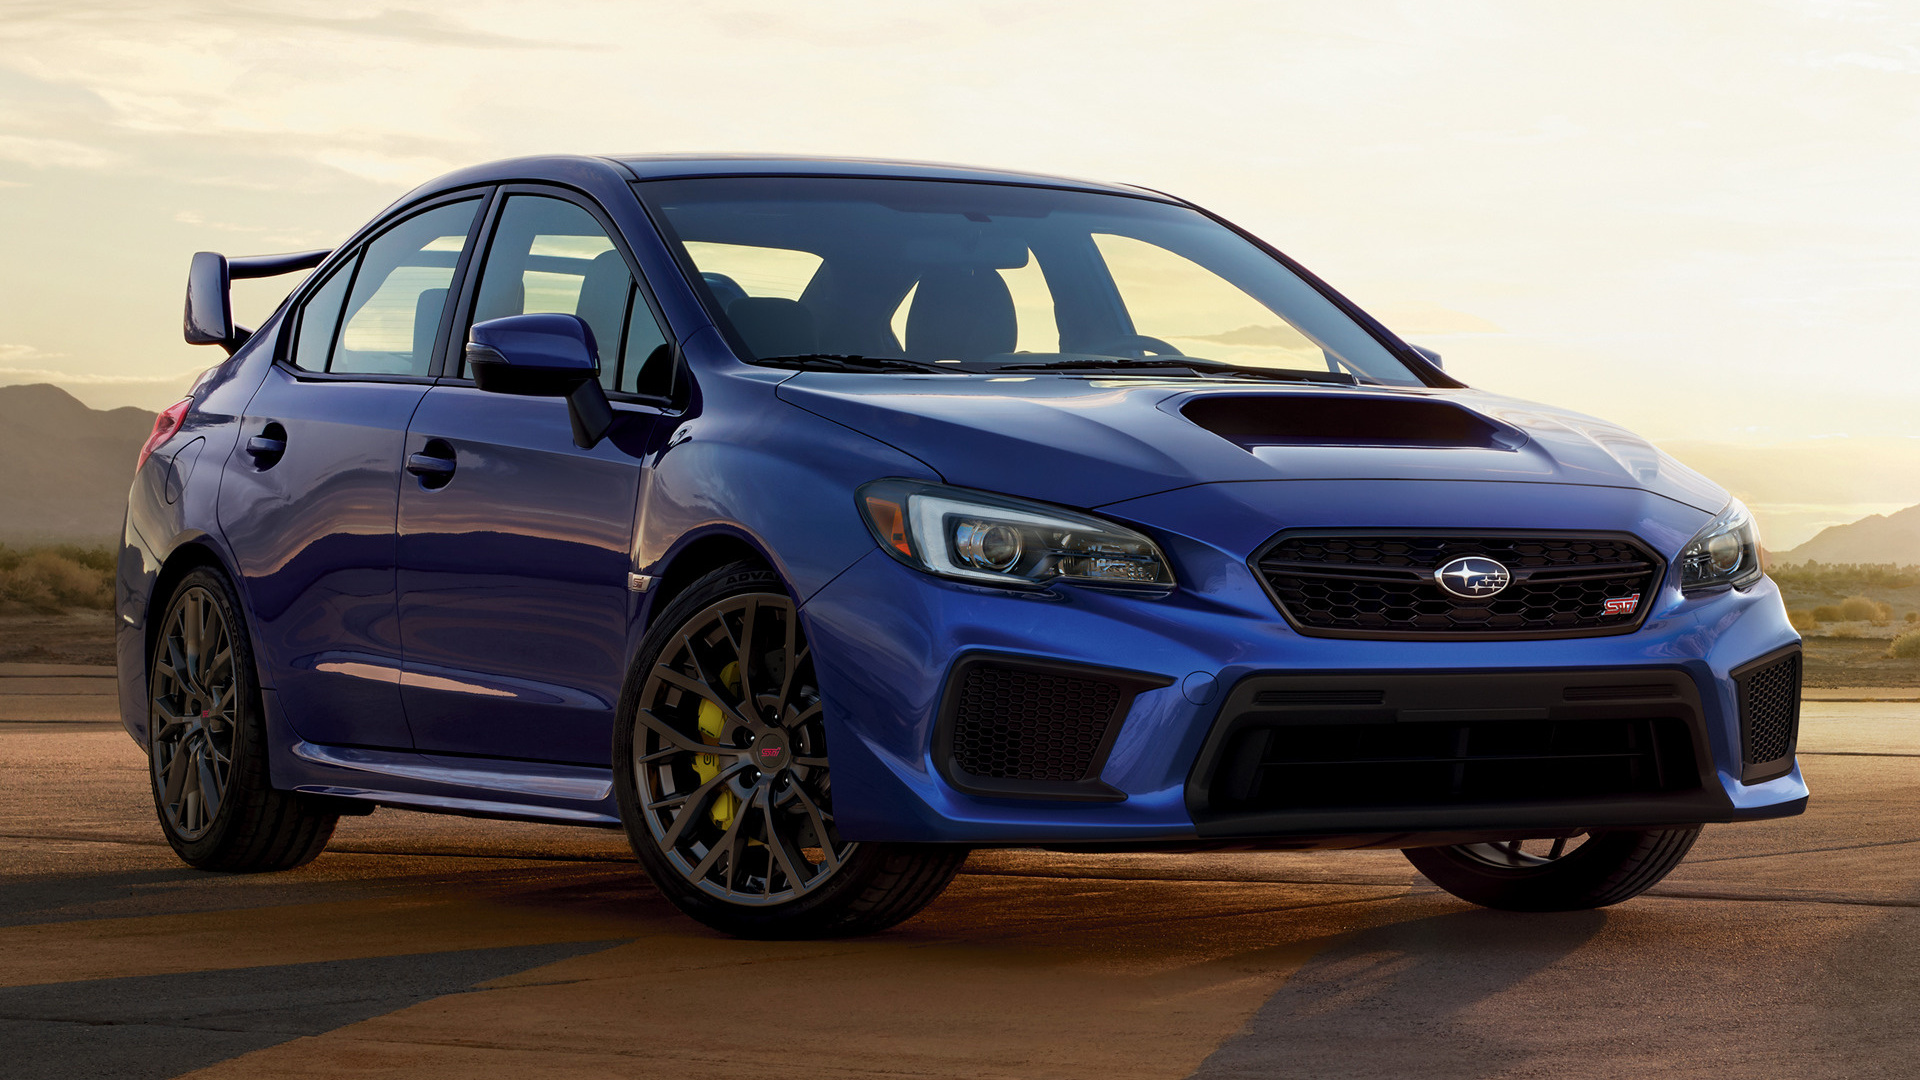 Subaru Wrx Seat New Car Updates 2019 2020 2003 Chevy Tracker Problems Sti 2018 Us Wallpapers And Hd Images